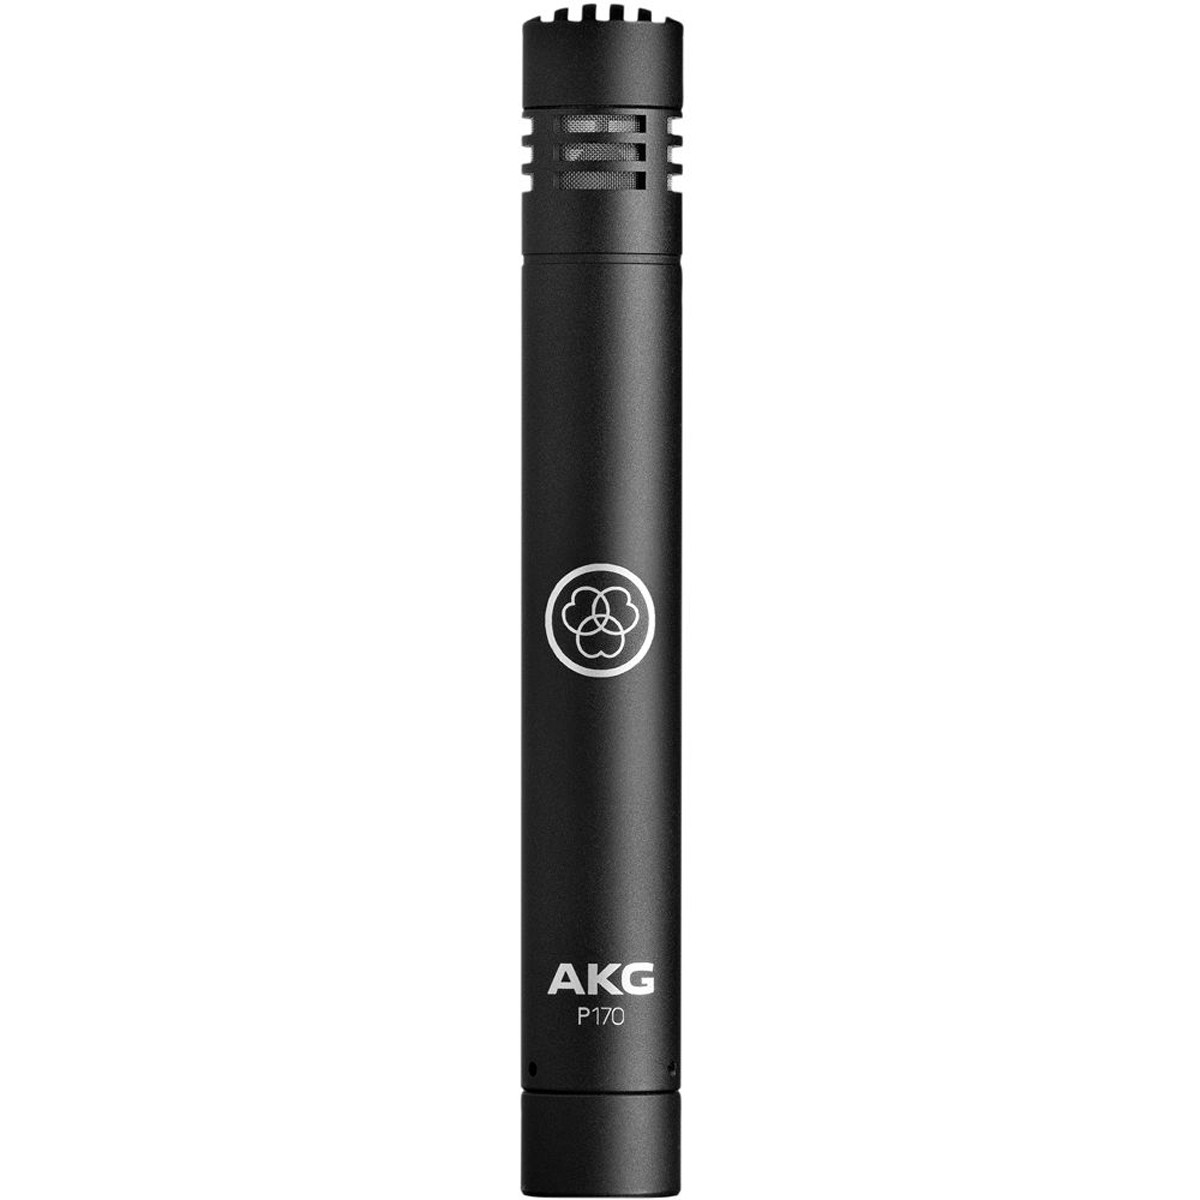 Image of AKG P170 Project Studio Line Instrument Condenser Microphone